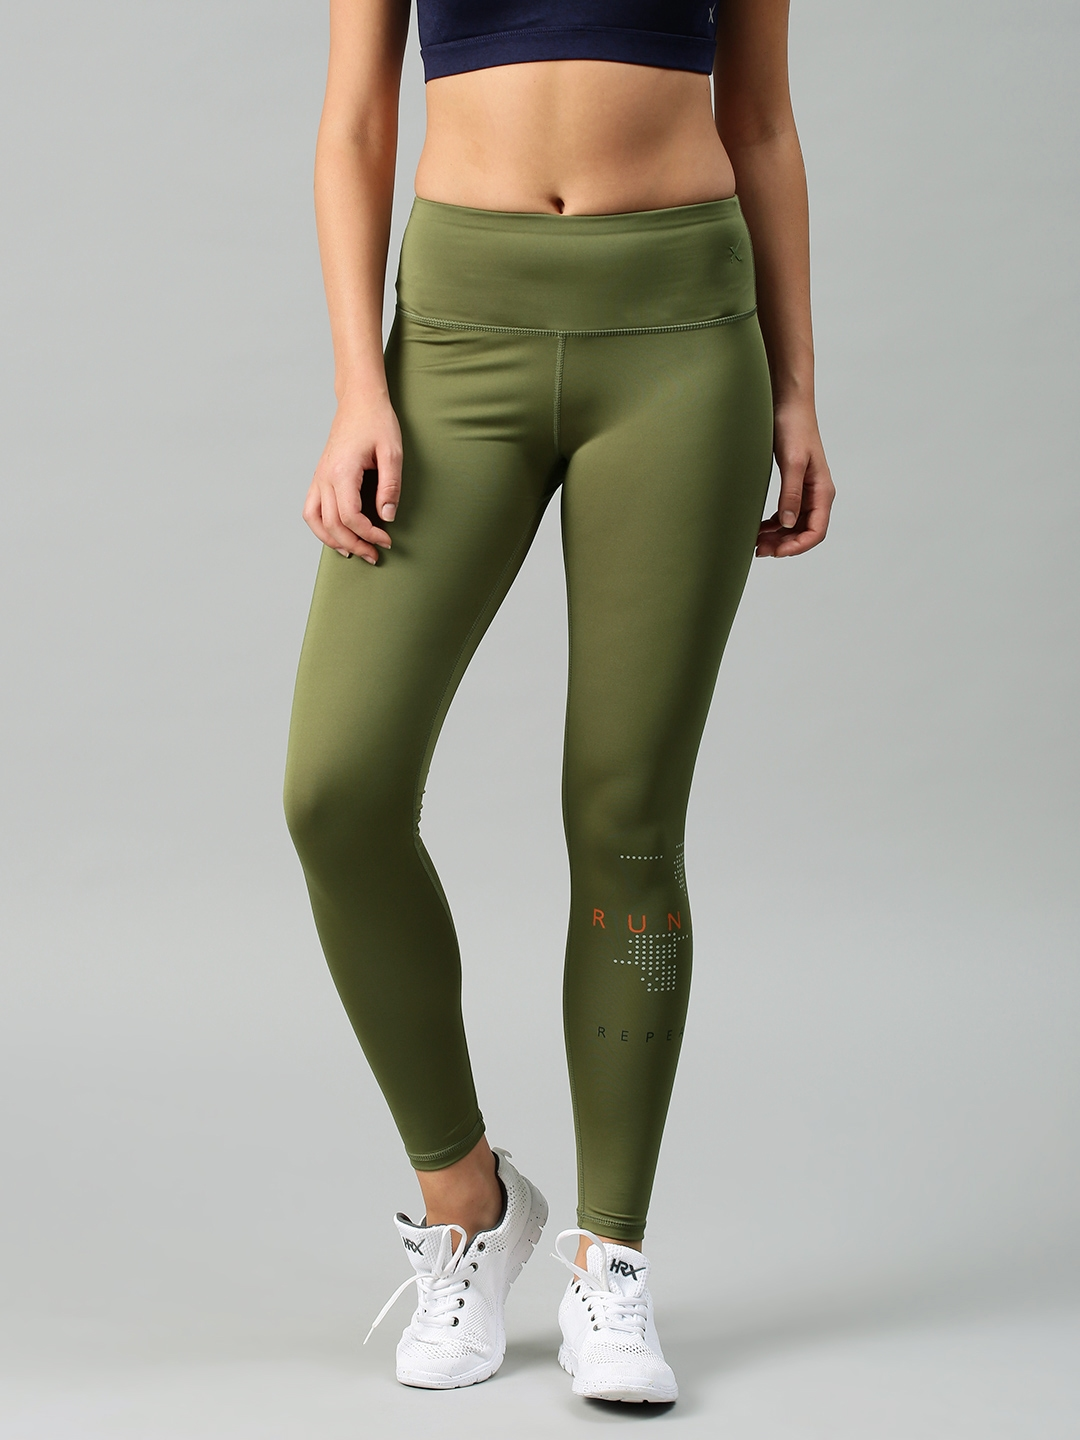 75a78f9b0 Buy HRX By Hrithik Roshan Women Olive Green Rapid Dry Cropped ...